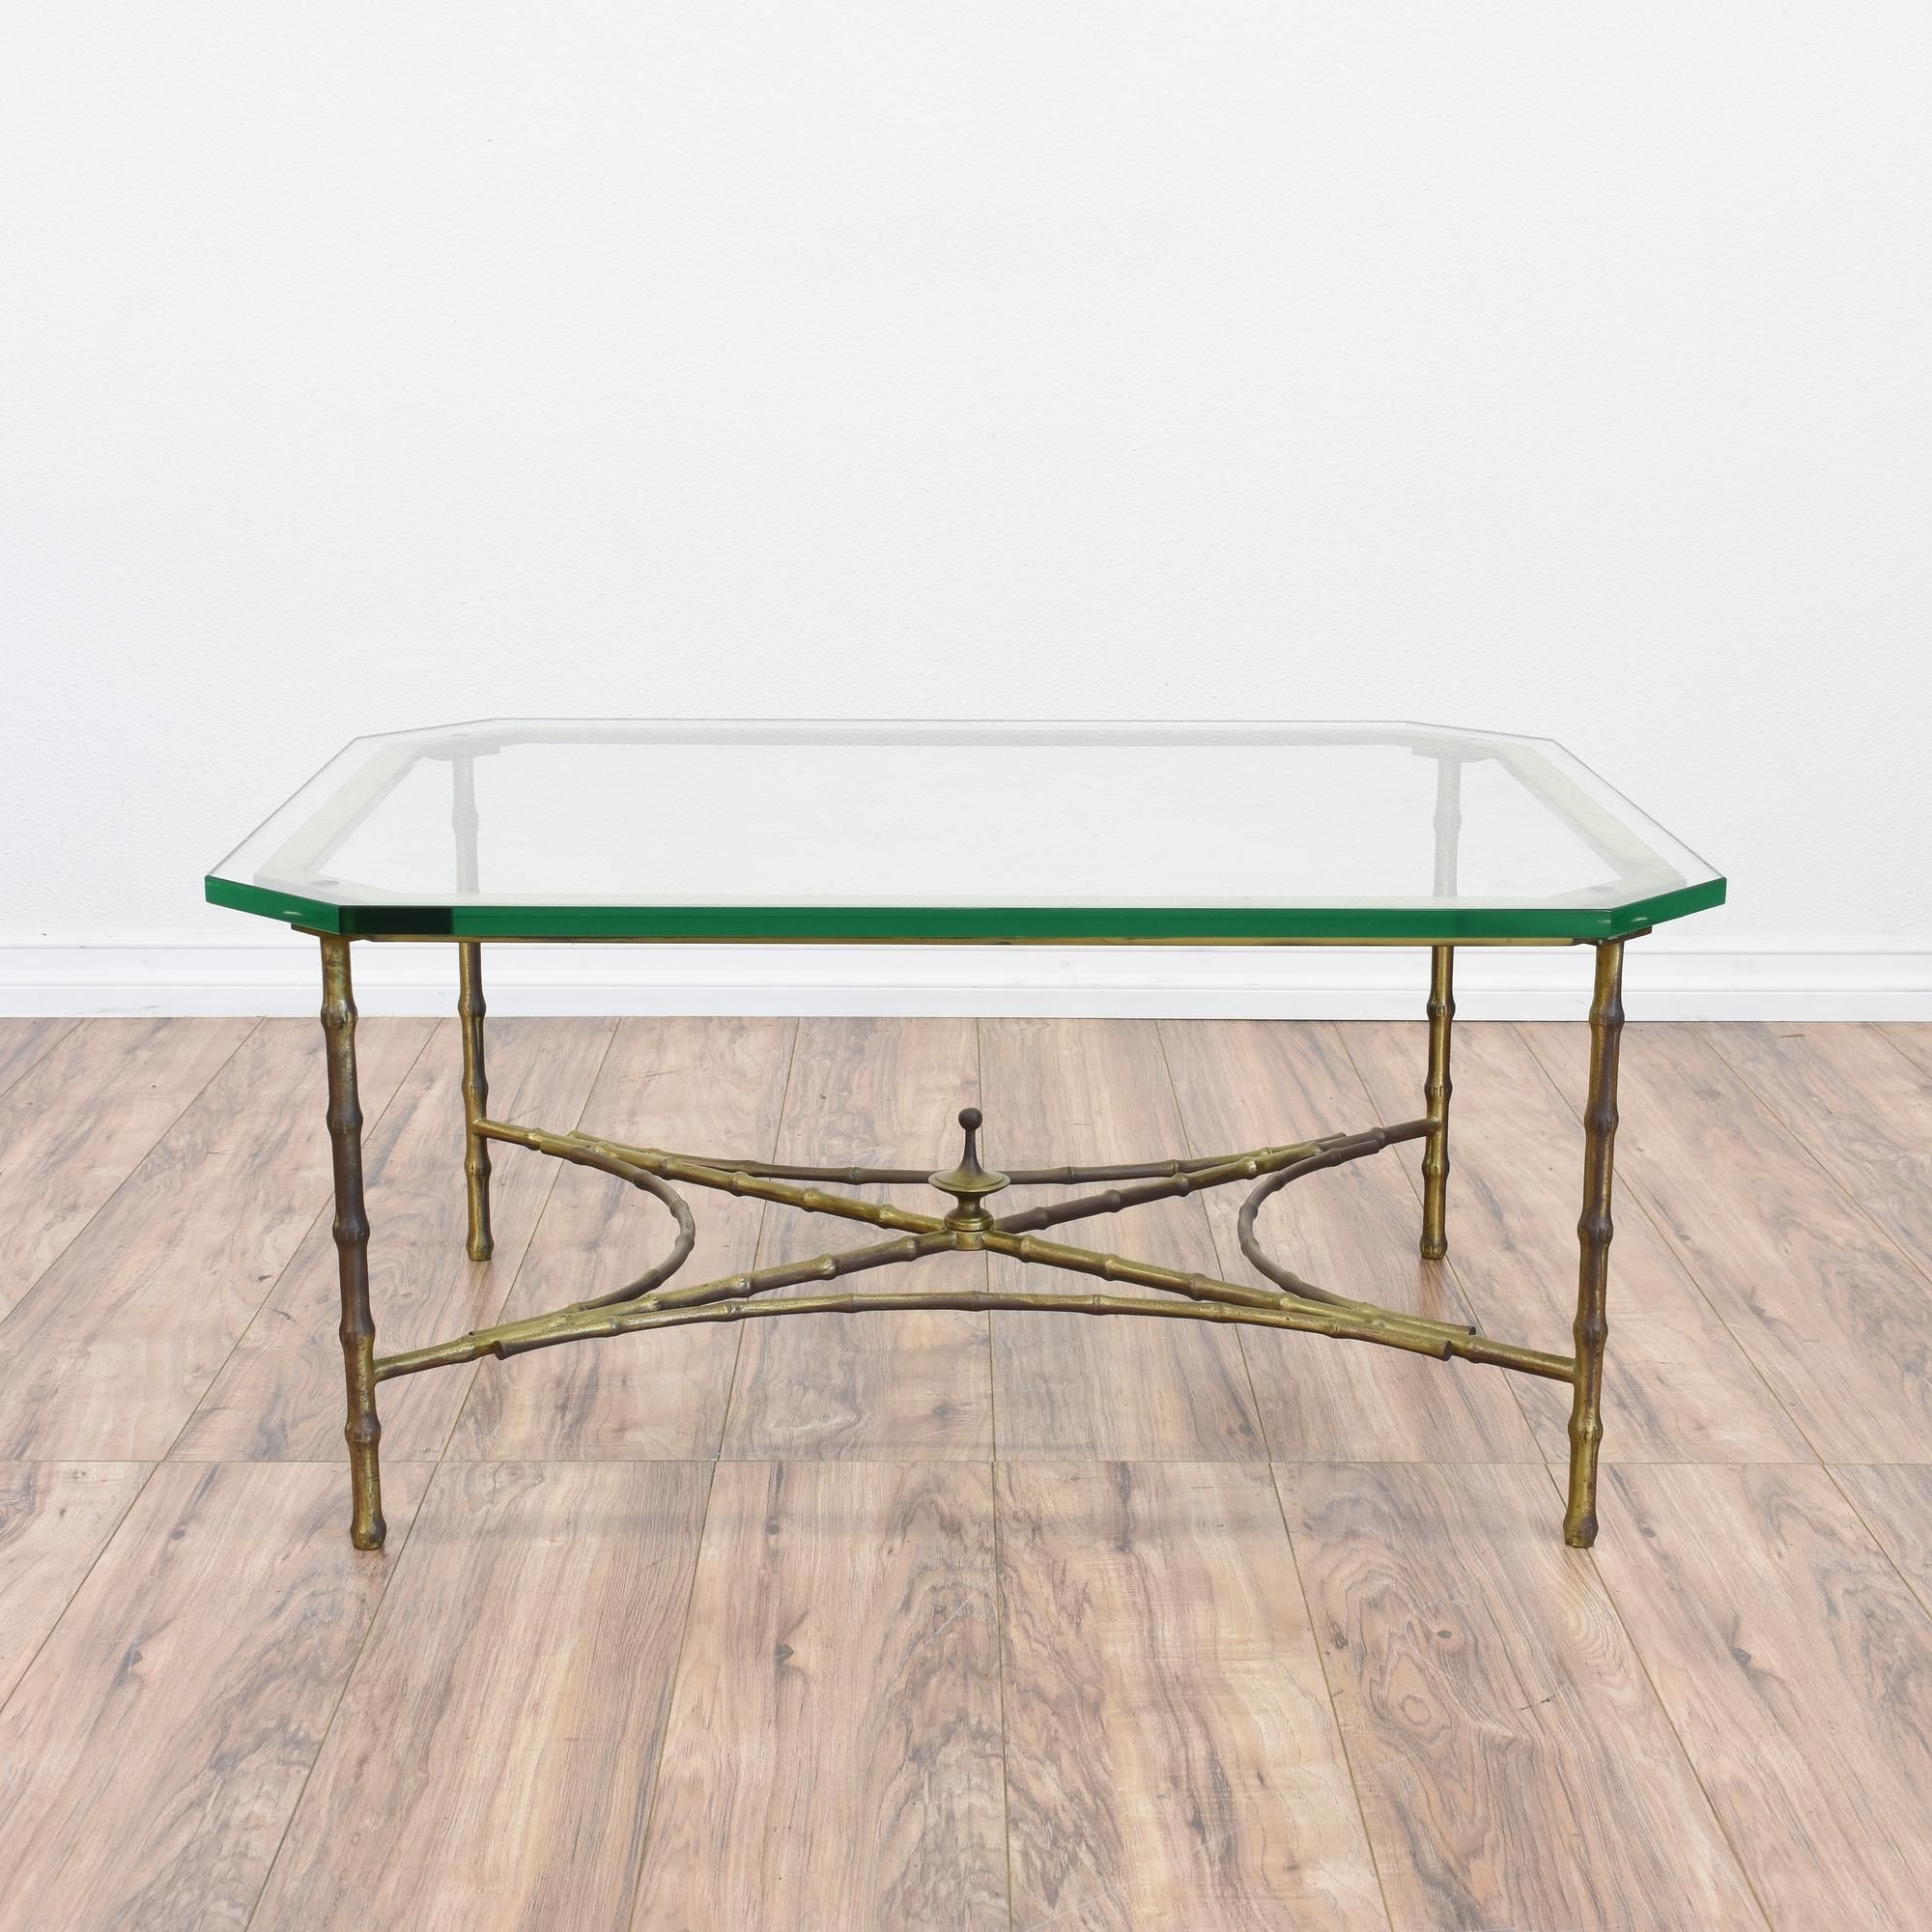 This Regency Coffee Table Is Featured In A Metal With A Shiny Brass Pertaining To Most Current Rectangular Brass Finish And Glass Coffee Tables (View 19 of 20)